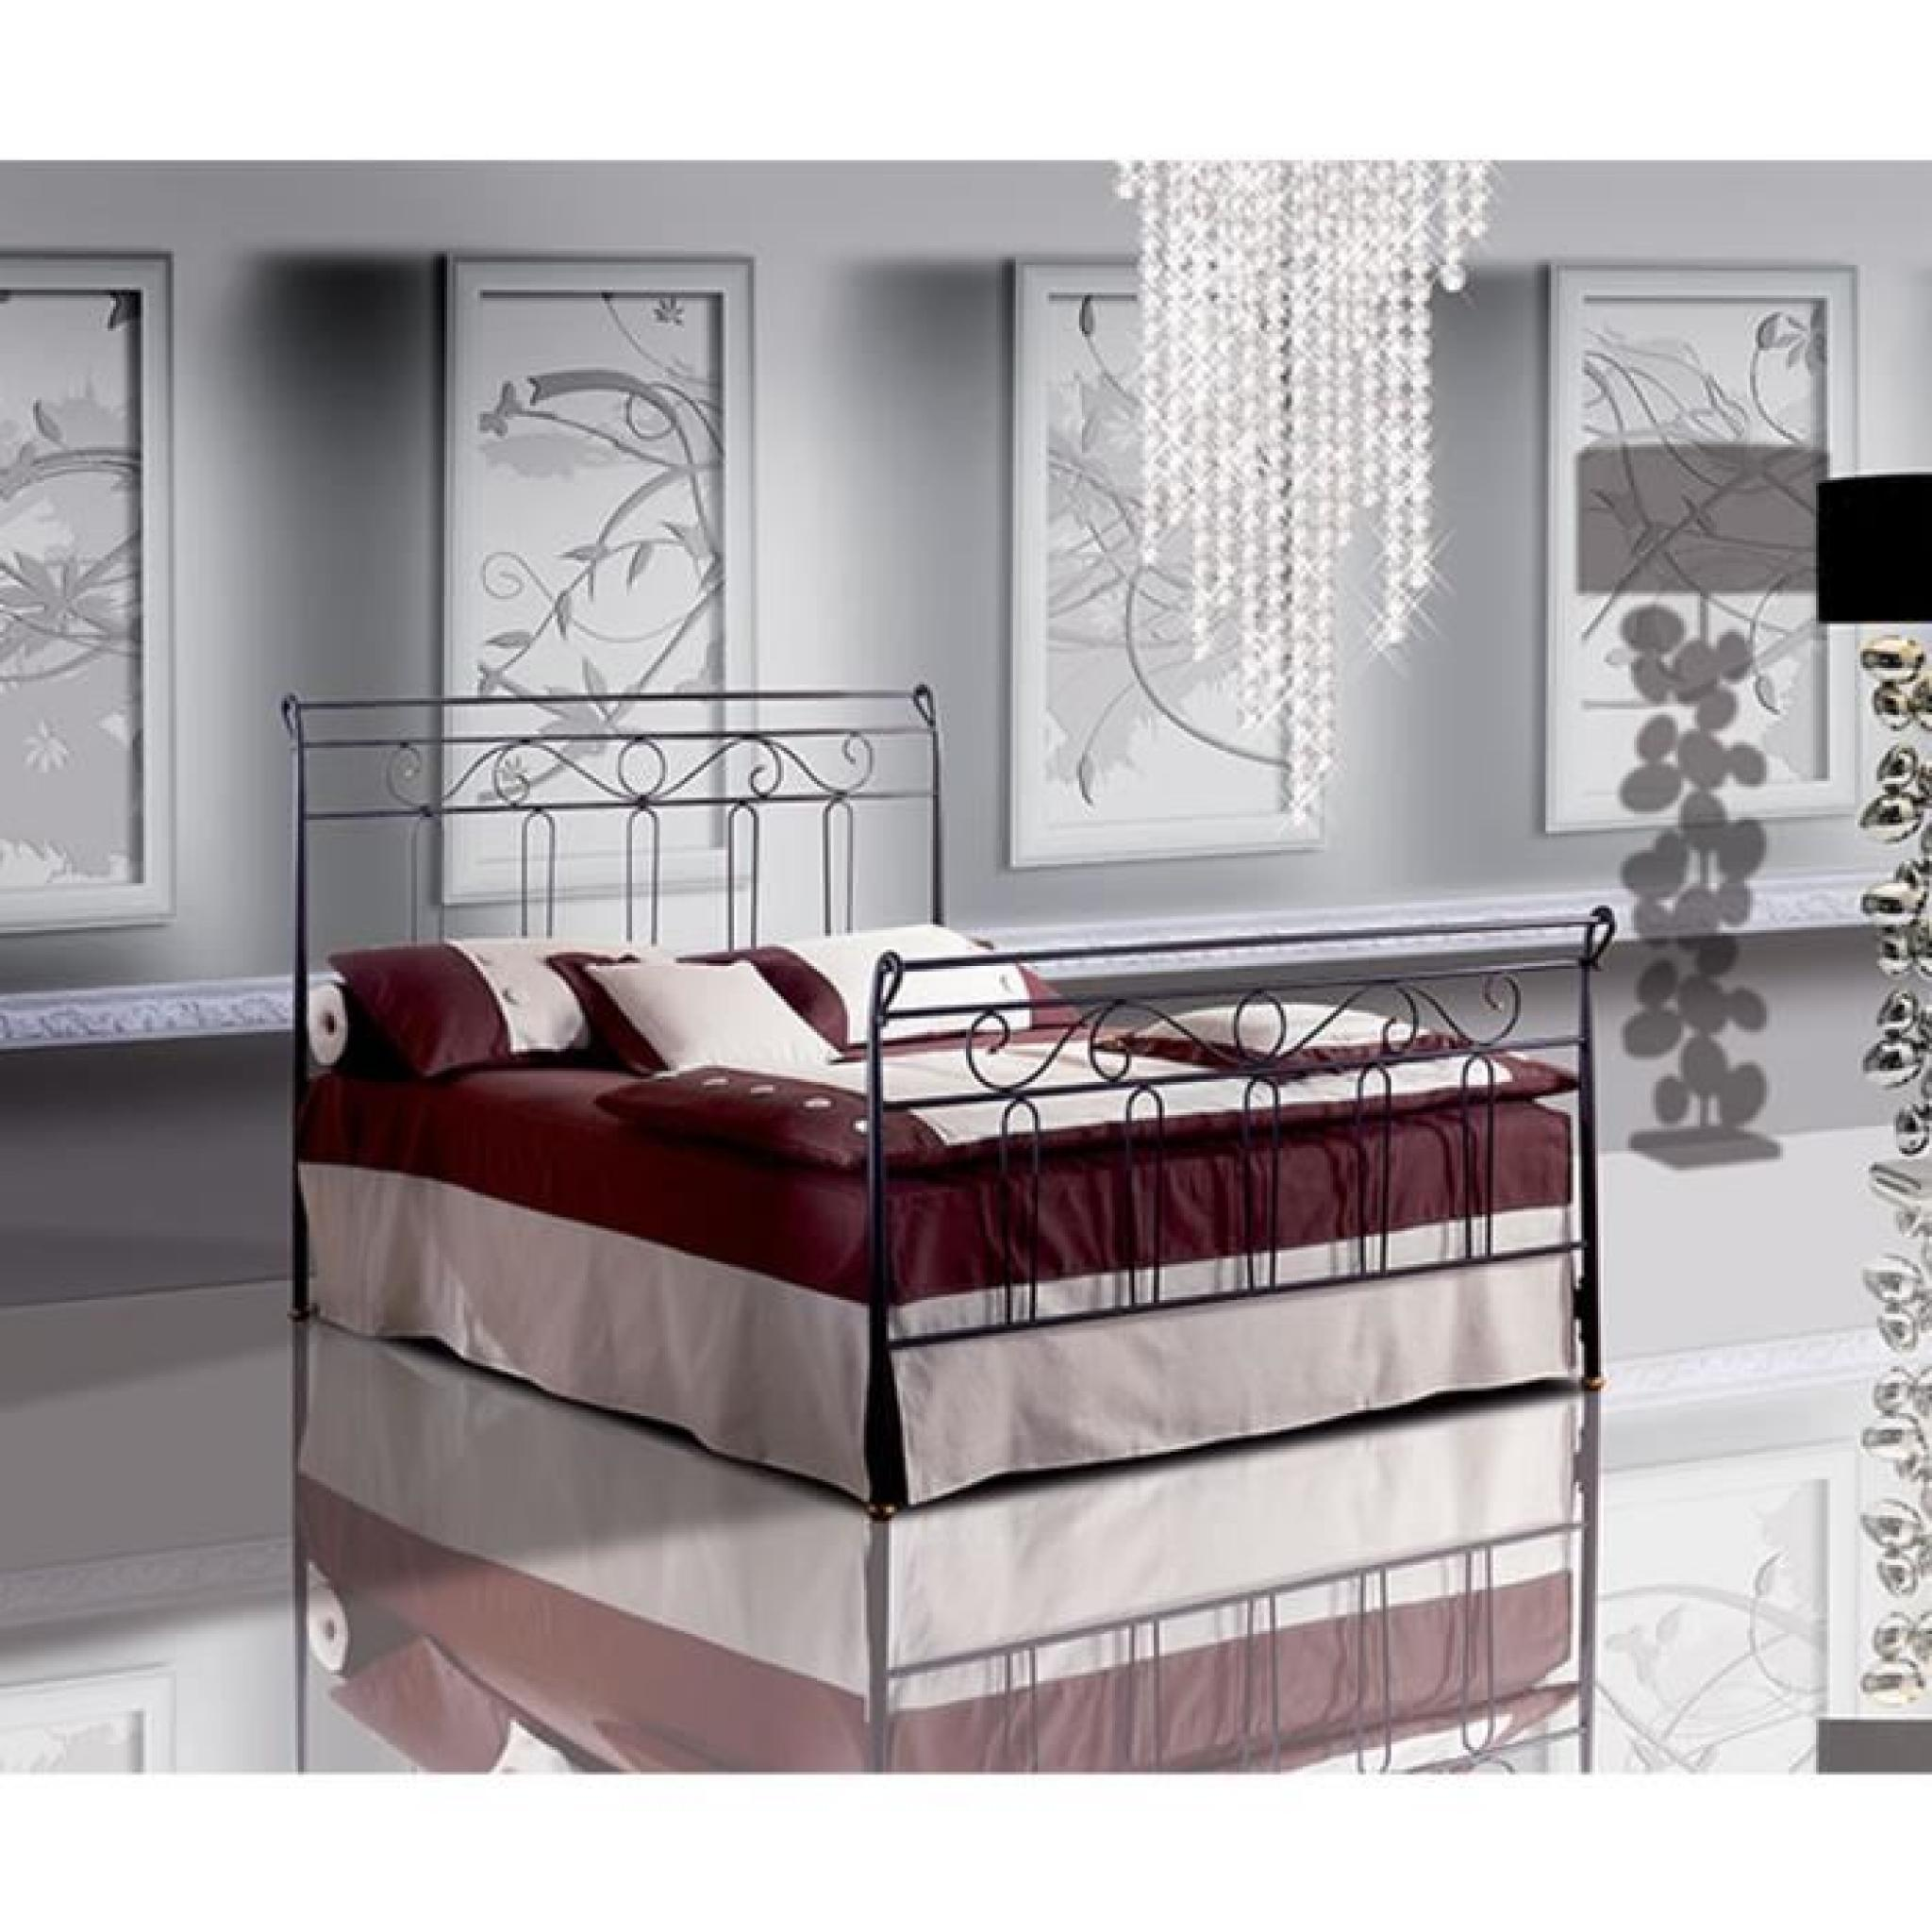 lit une place et demie en fer forg garofano t te de lit. Black Bedroom Furniture Sets. Home Design Ideas